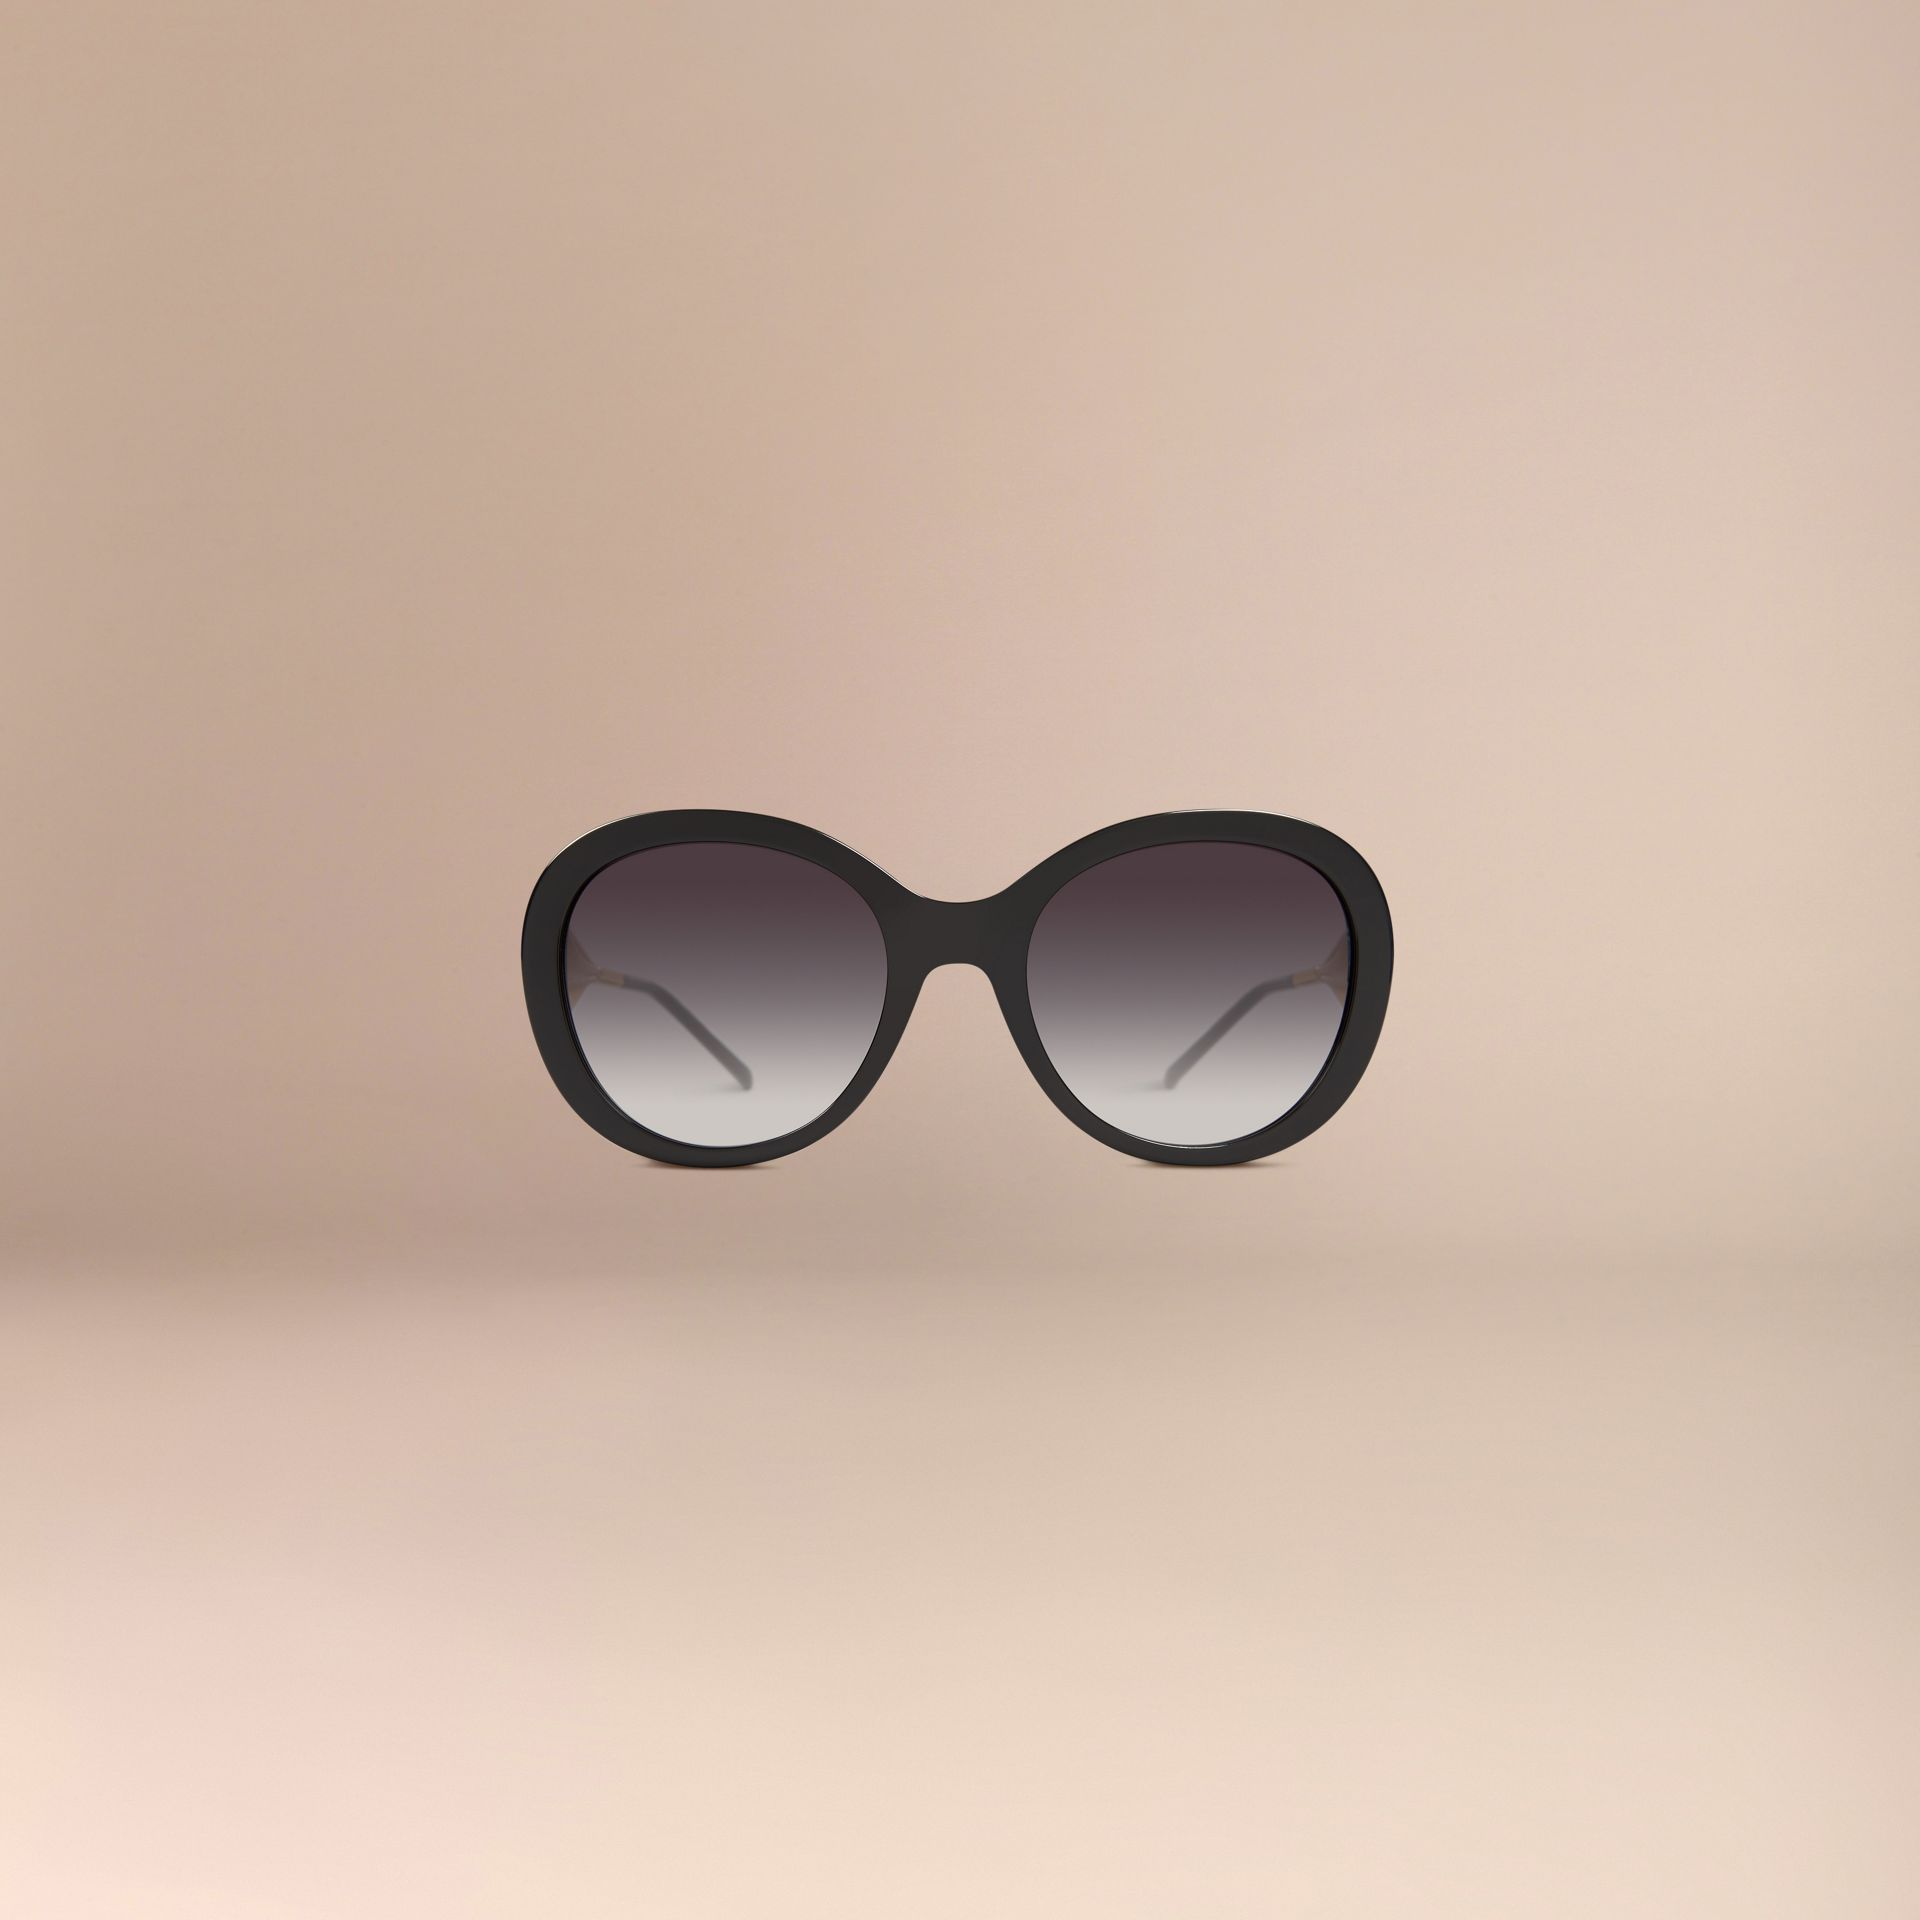 Oversize Round Frame Sunglasses in Black - Women | Burberry - gallery image 3